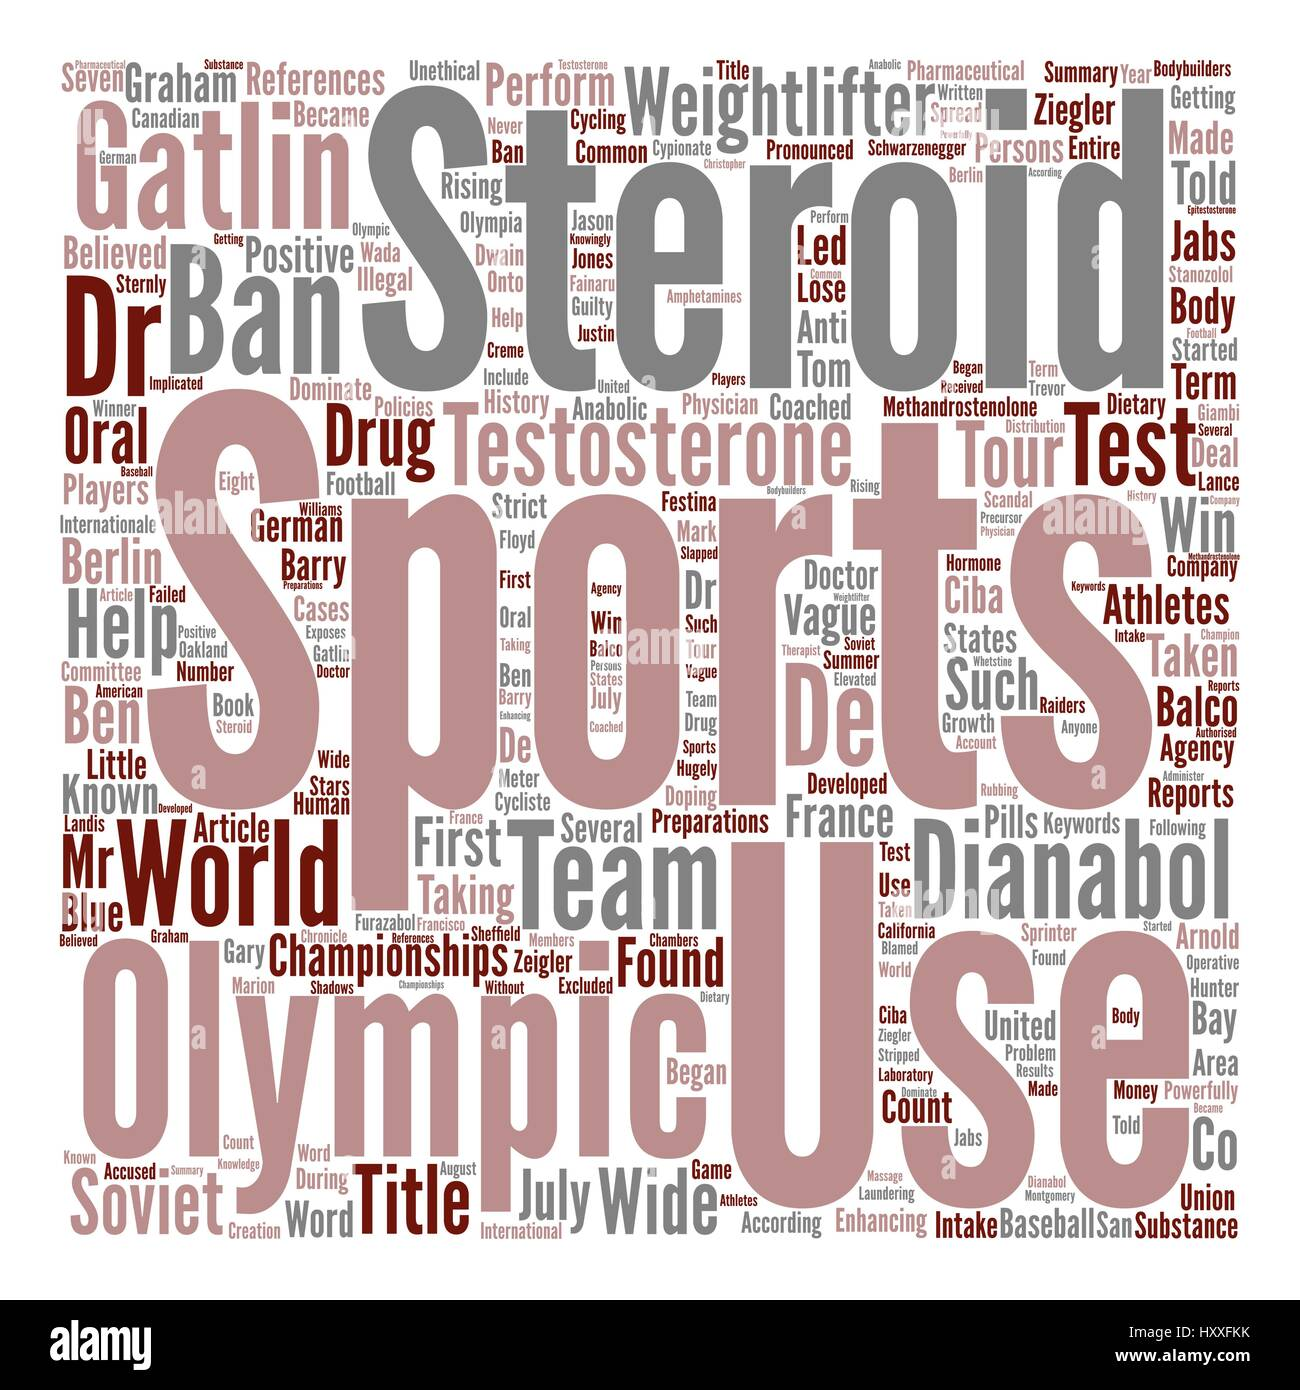 Steroid Use In Sports Is Banned text background word cloud concept - Stock Vector